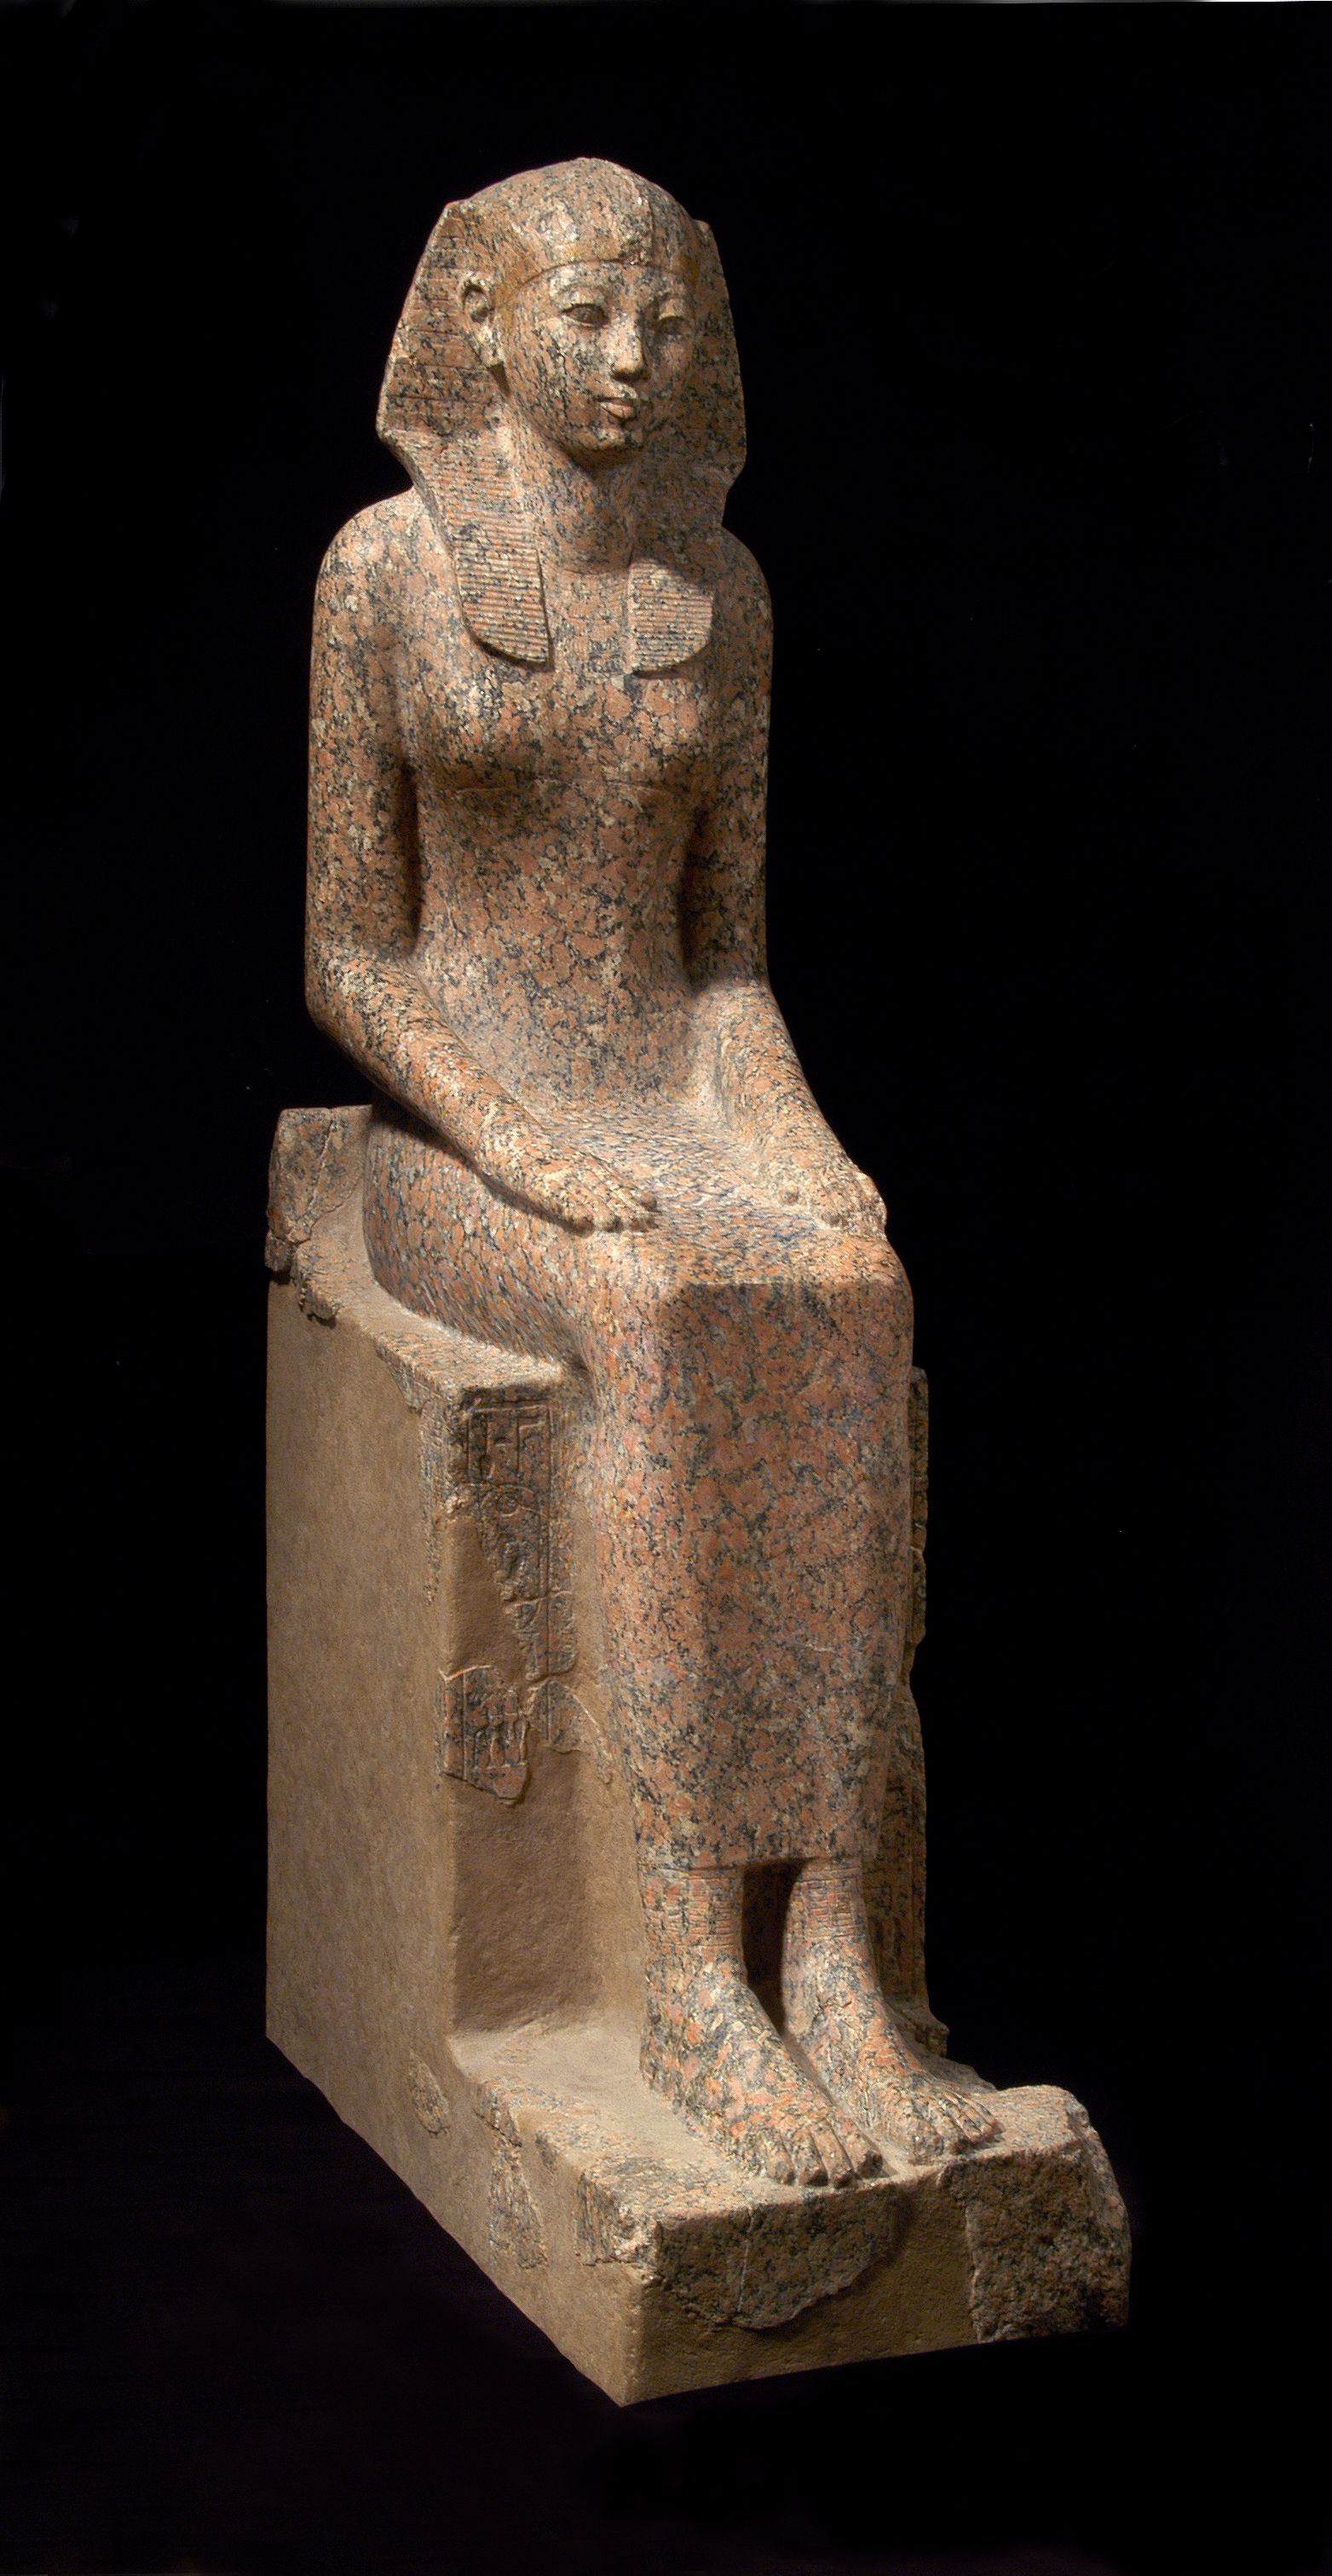 seated statue of hatshepsut One limestone statue shows her without a beard and with breasts, but usually, her body is masculine tyldesley says a childhood depiction presents her with male genitalia gill, ns pharaoh hatshepsut of egypt biography thoughtco, feb 28, 2017.